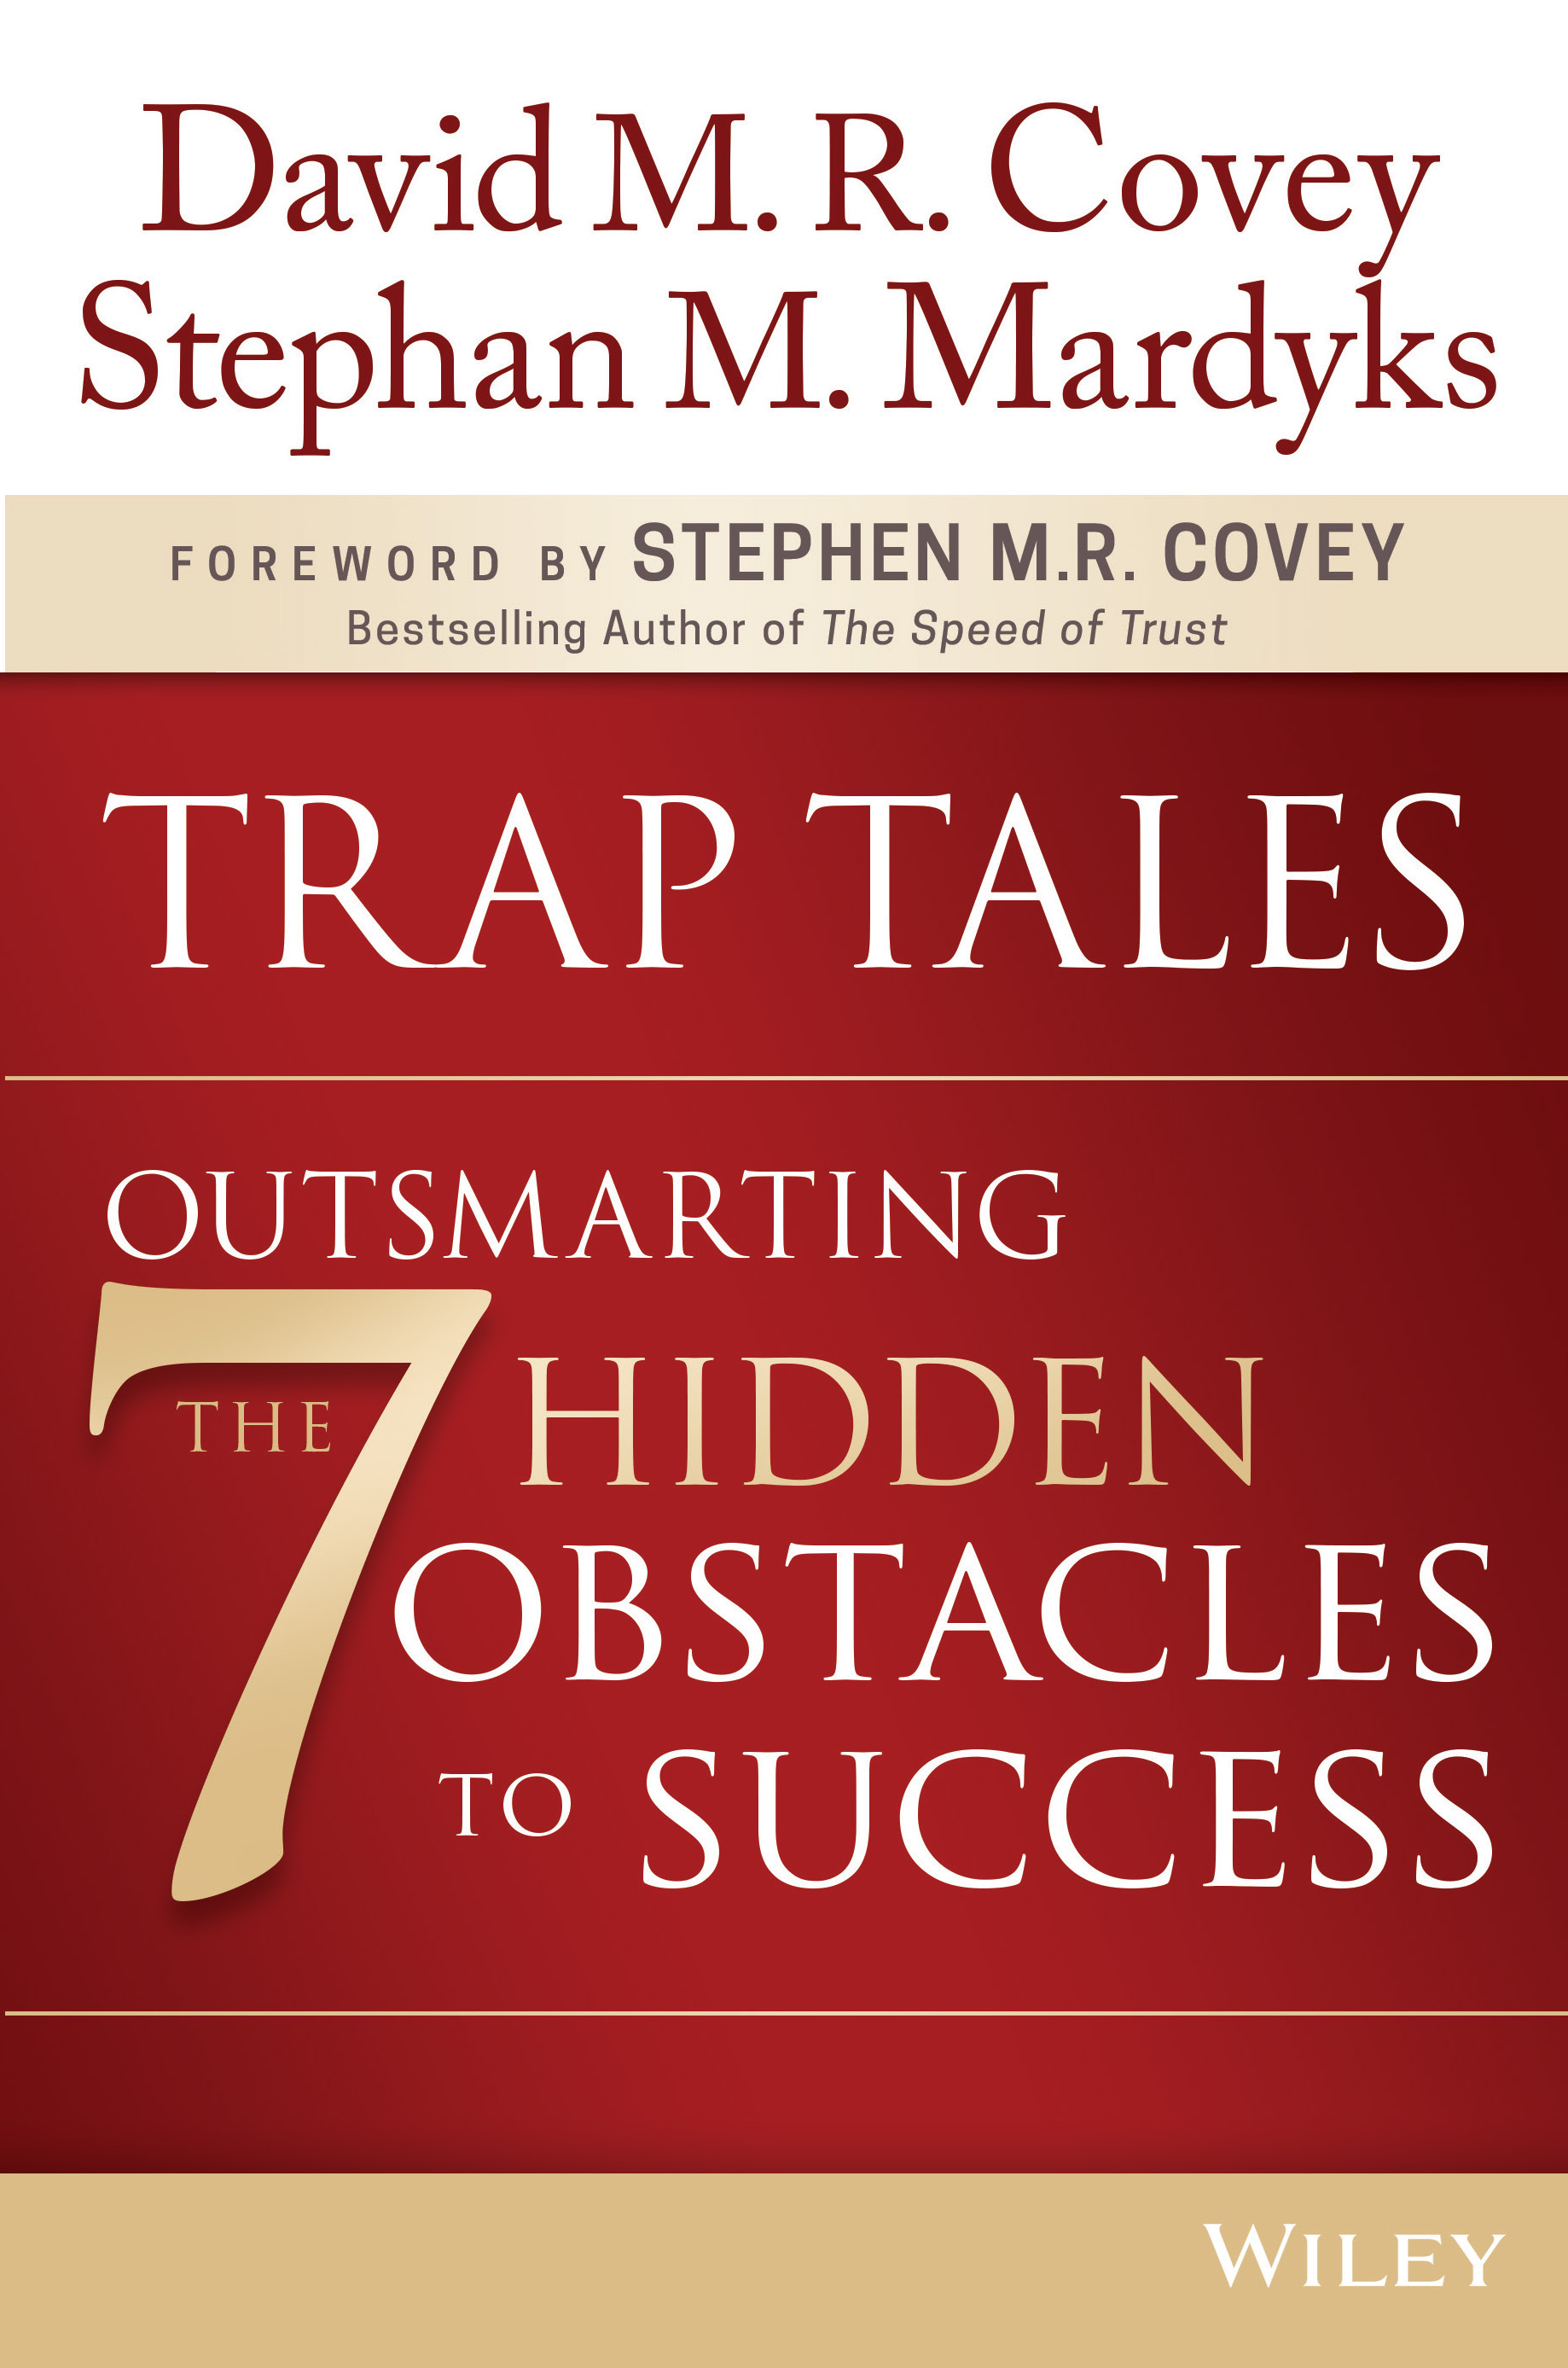 Trap Tales book cover.jpg